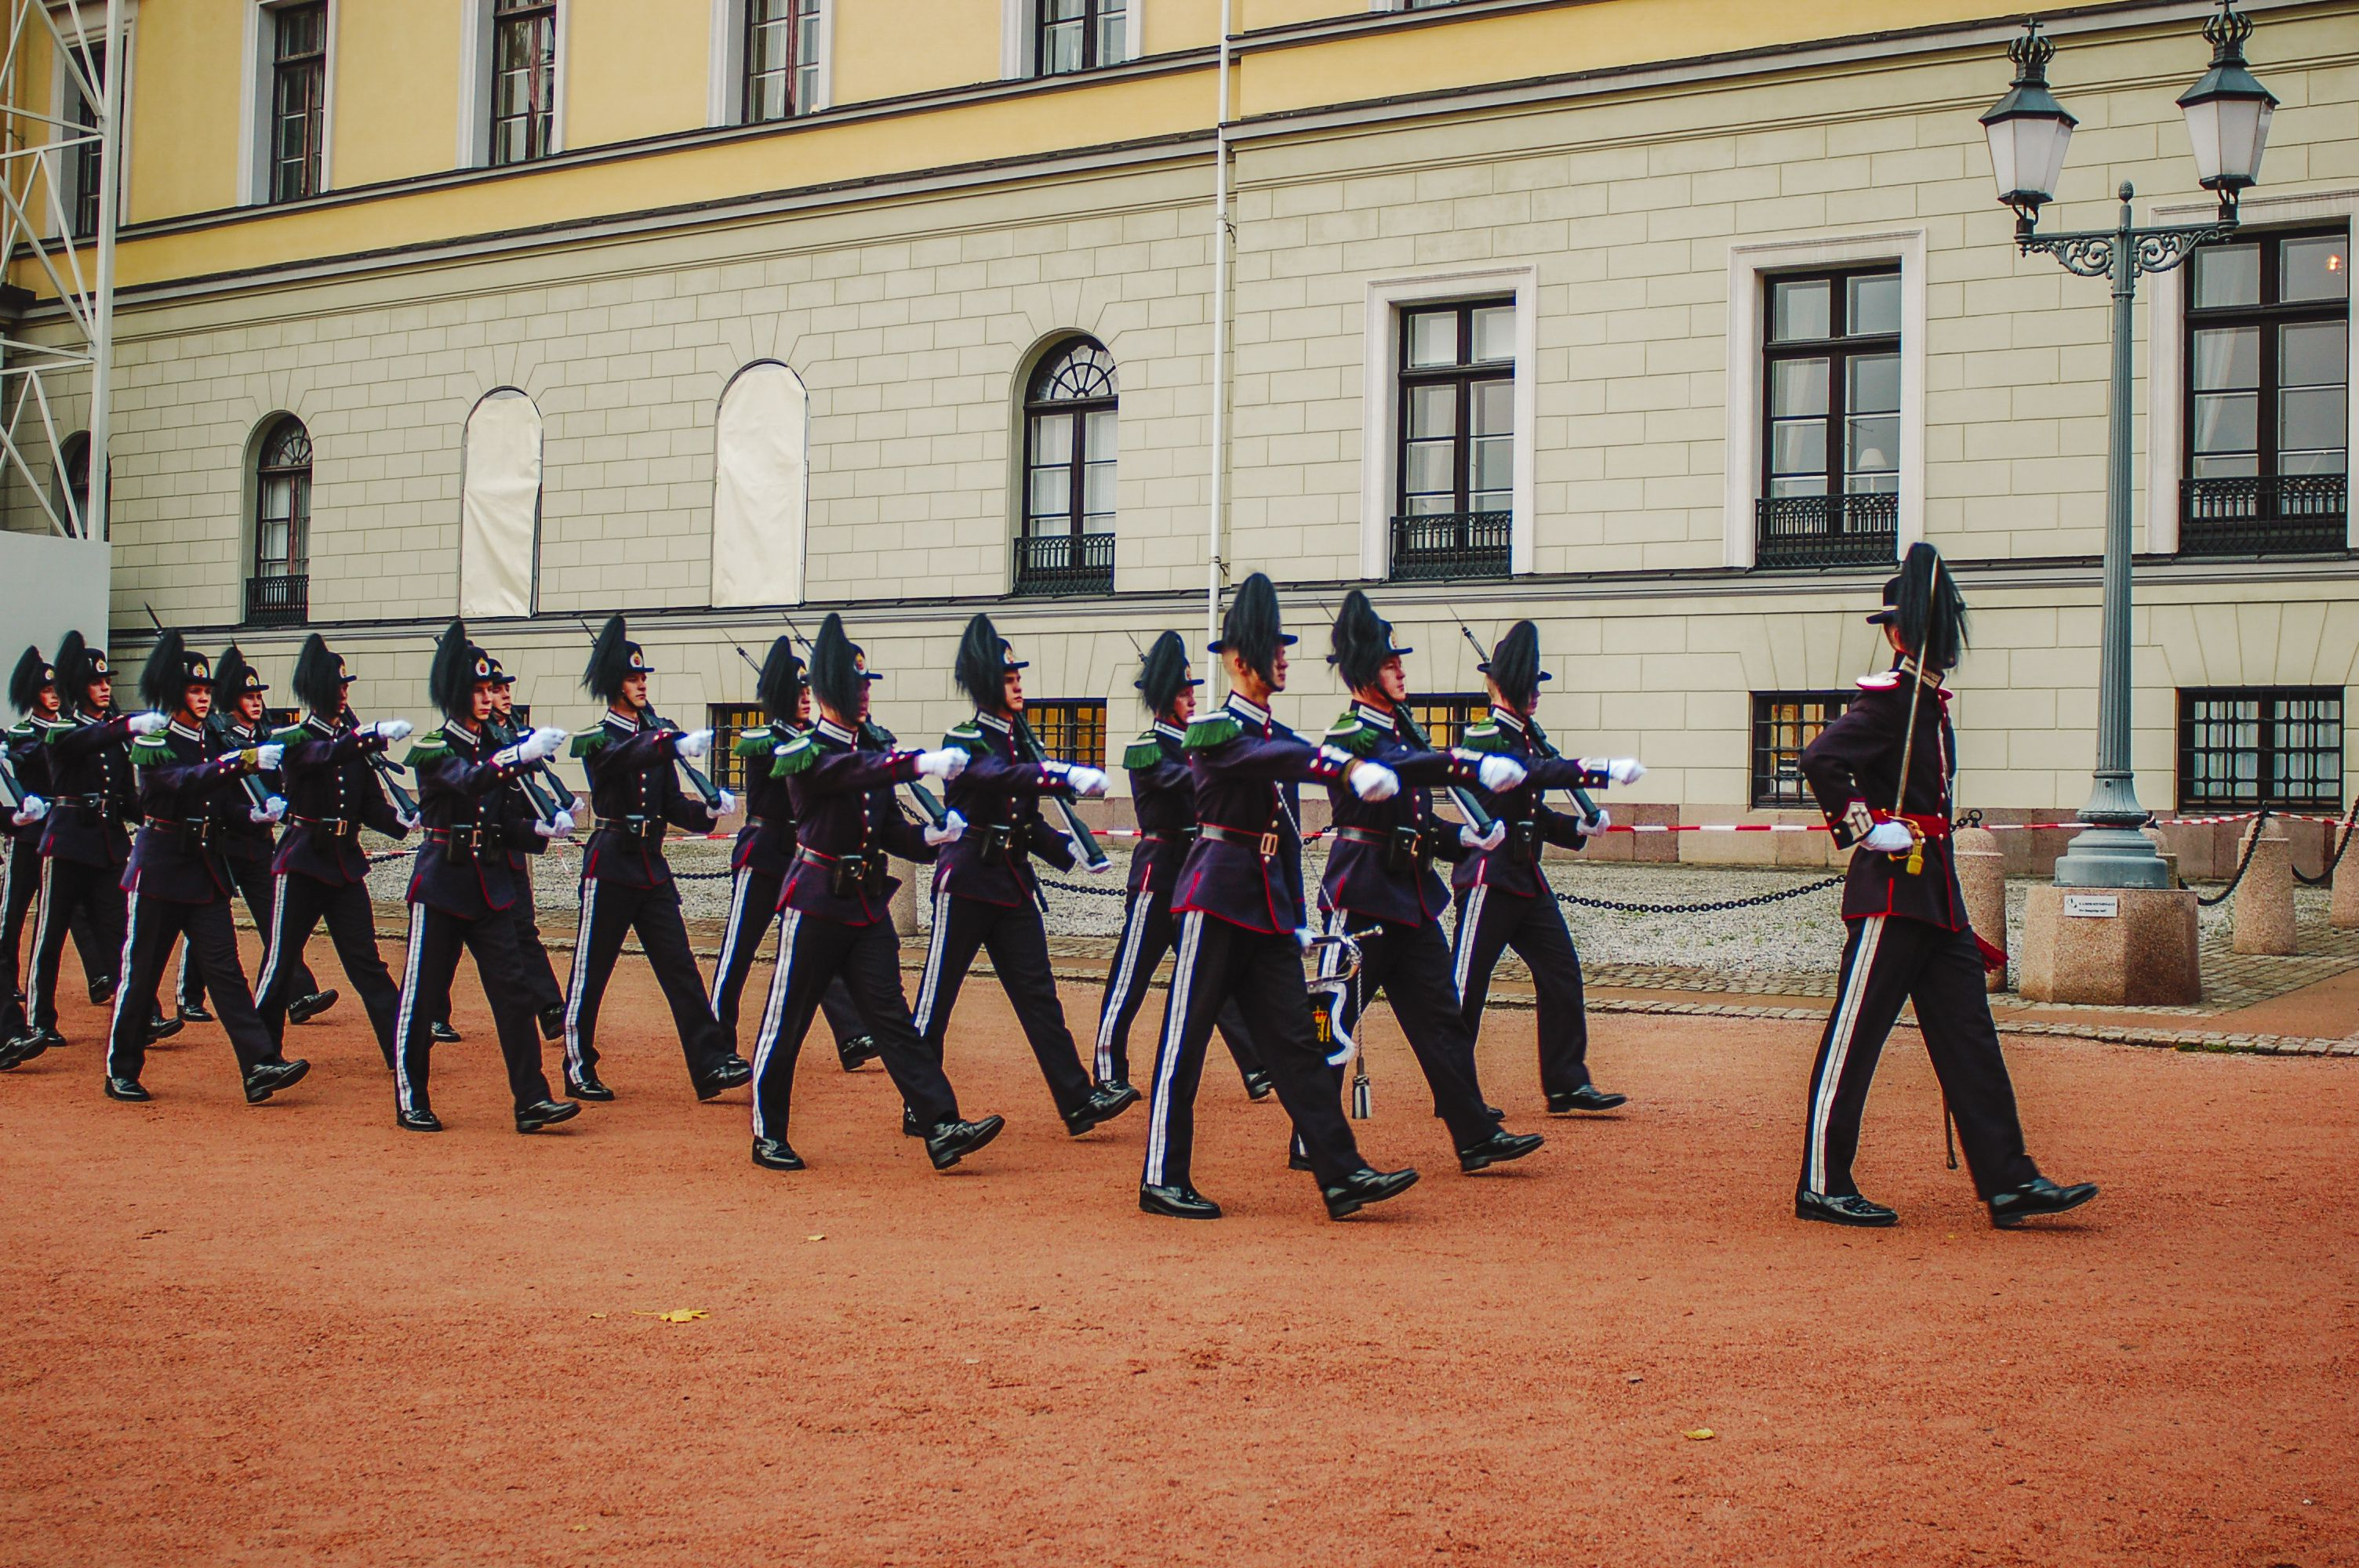 Visit the Changing of the Guard at Oslo Palace in Norway